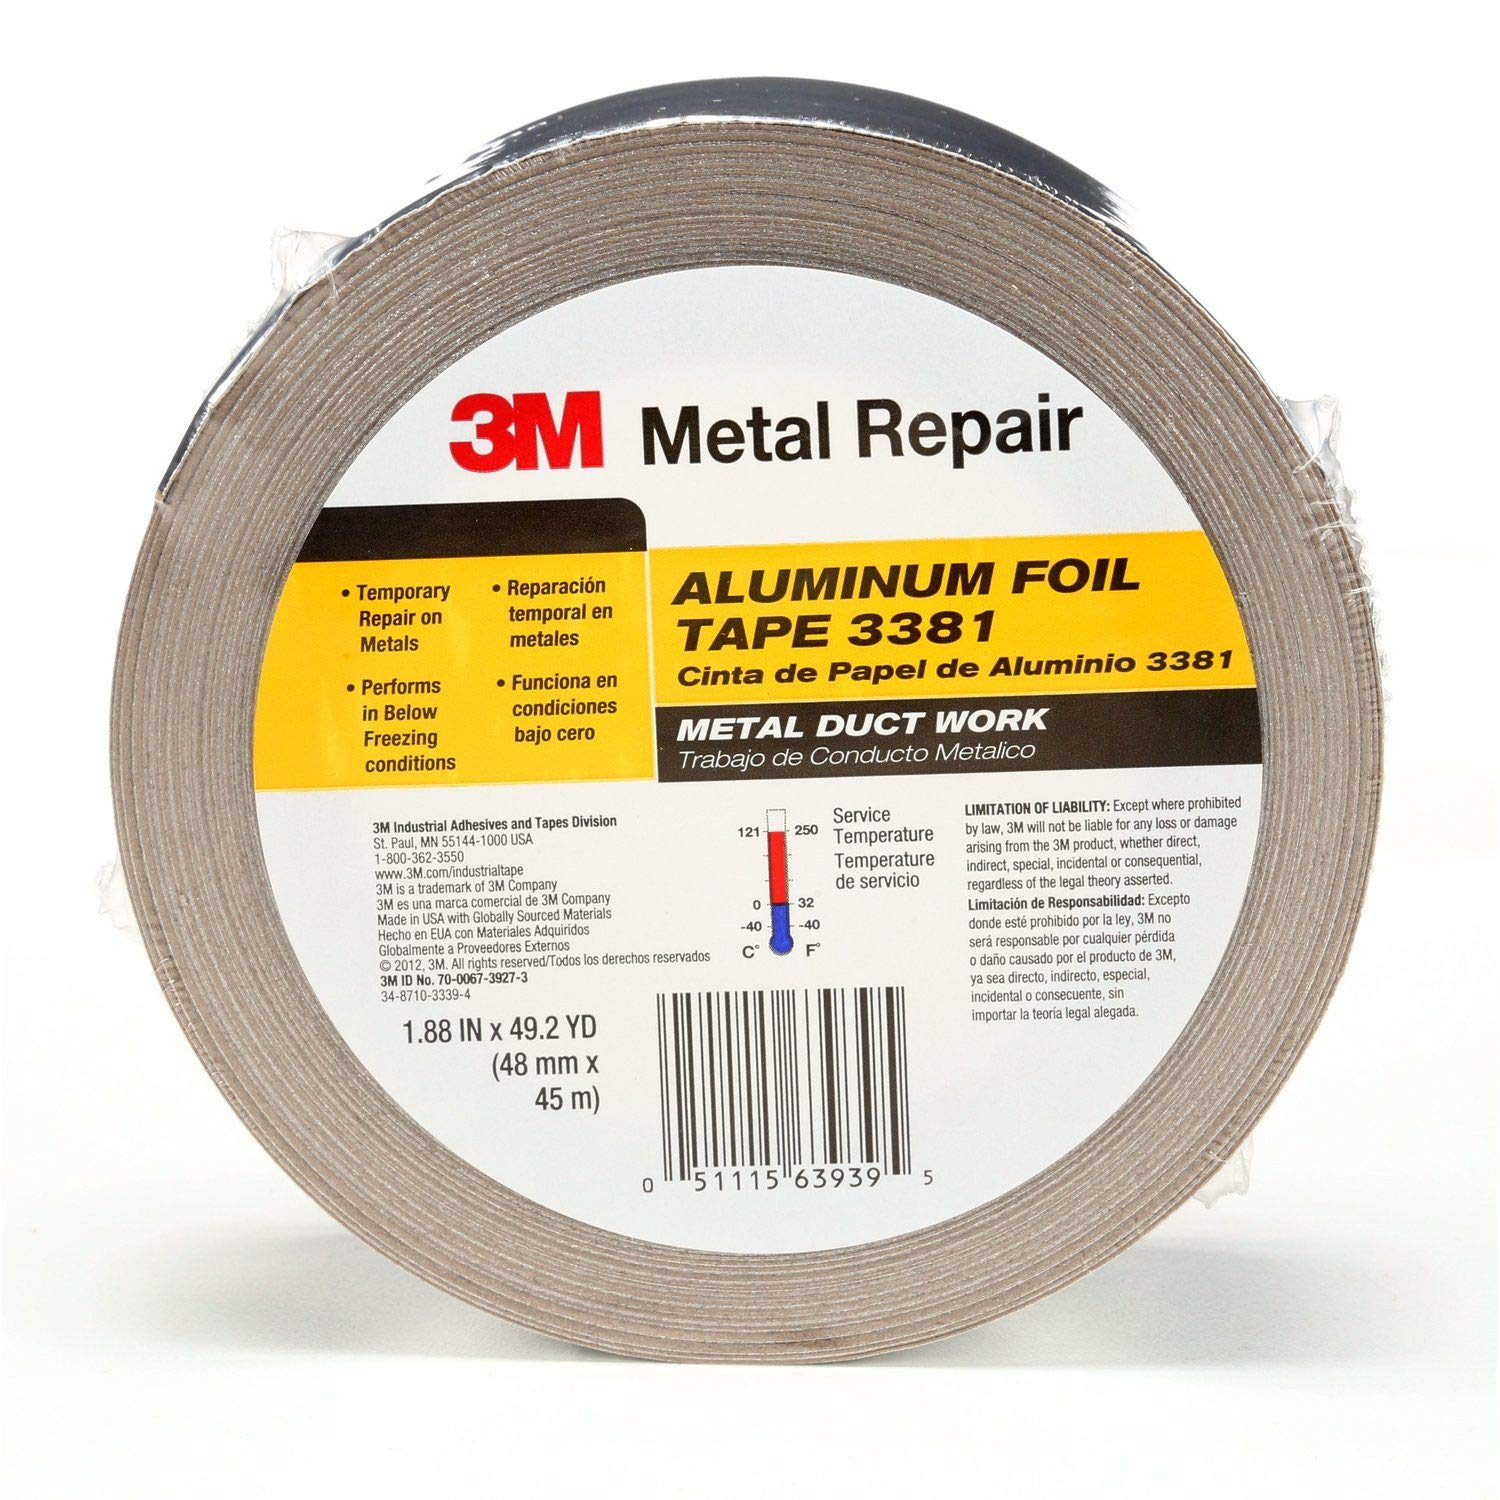 3M Aluminum Foil Tape 3381, 1.88 in x 50 yd, 2.7 mil, Silver, HVAC, Sealing and Patching, Moisture Barrier, Cold Weather, Air Ducts, Foam Sheathing Boards, Insulation, Metal Repair